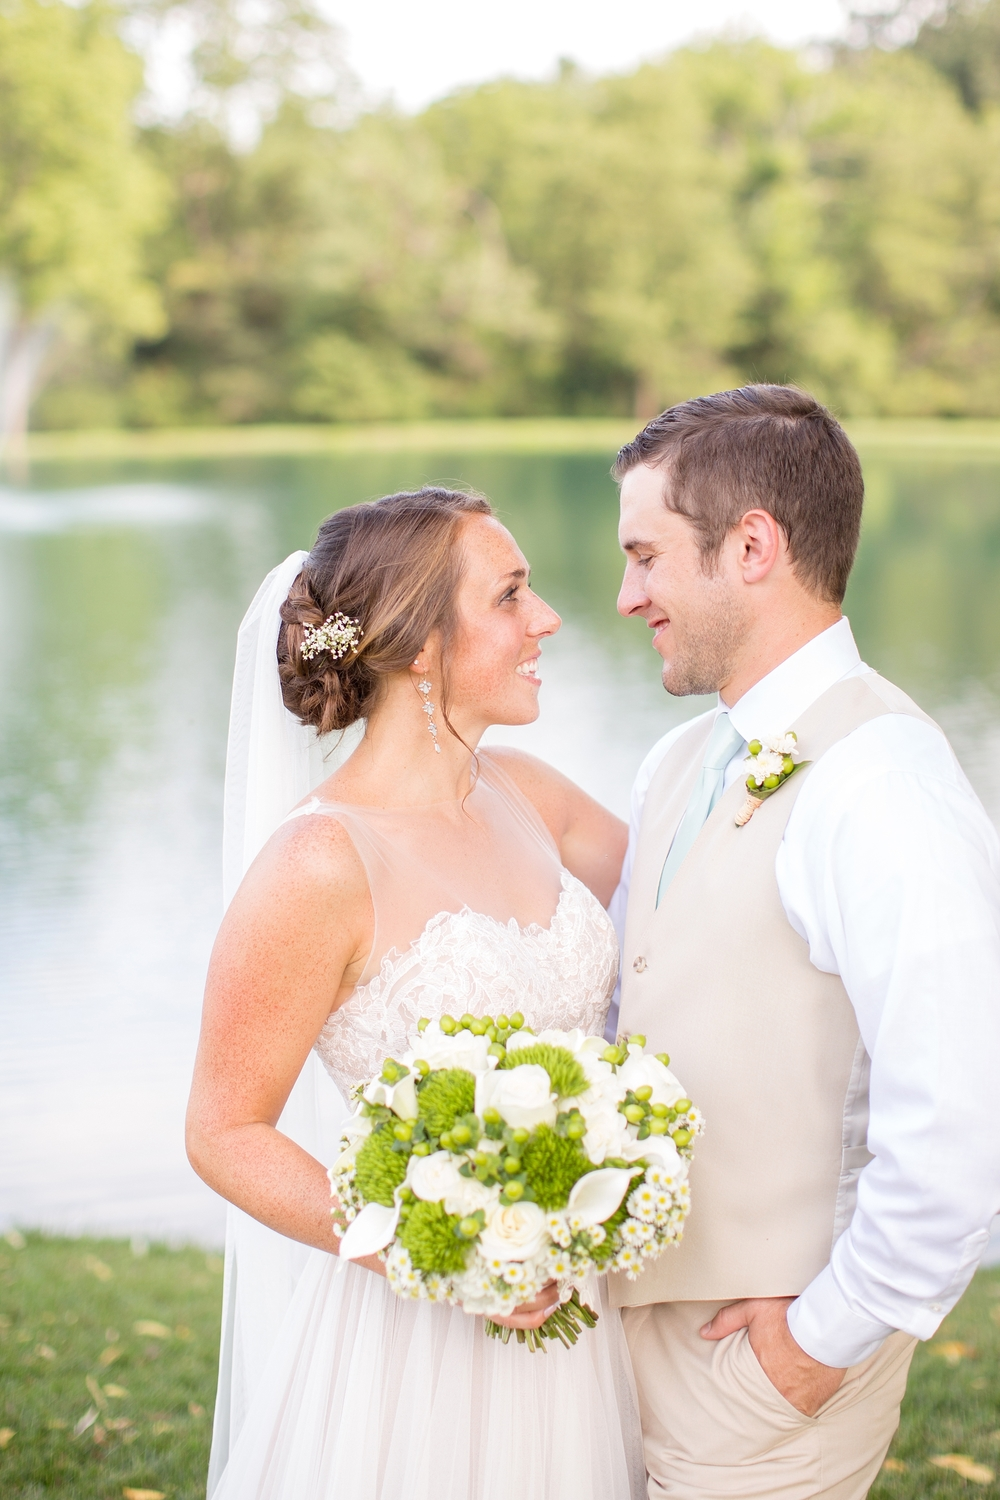 Herndon 5-Bride & Groom Portraits-669_anna grace photography baltimore maryland wedding photographer pond view farm photo.jpg